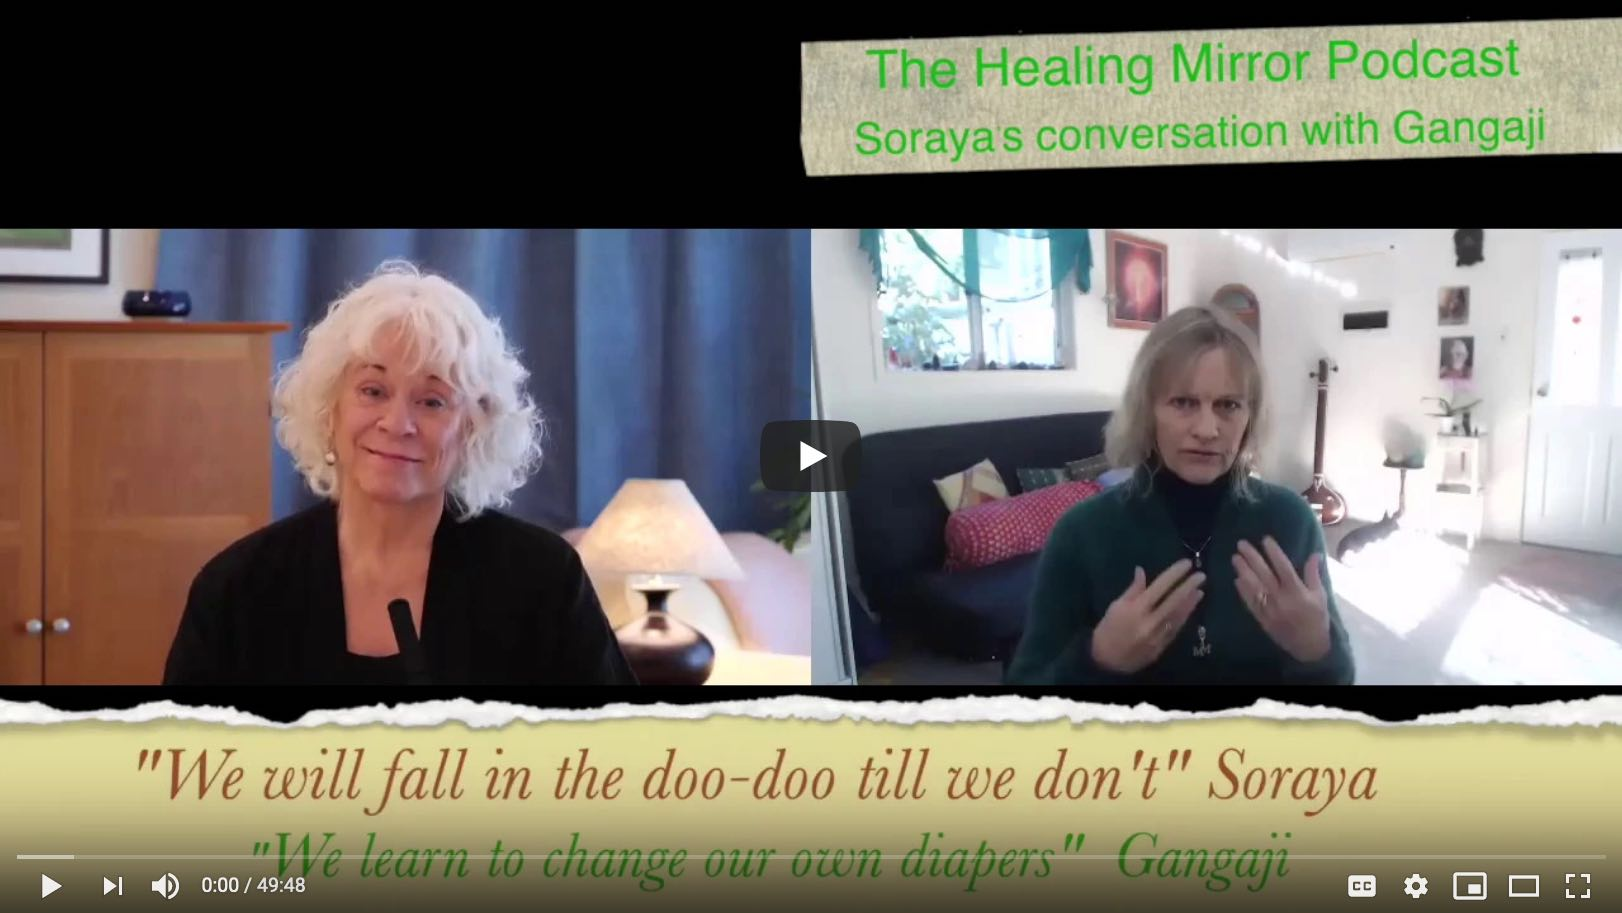 The Healing Mirror Podcast